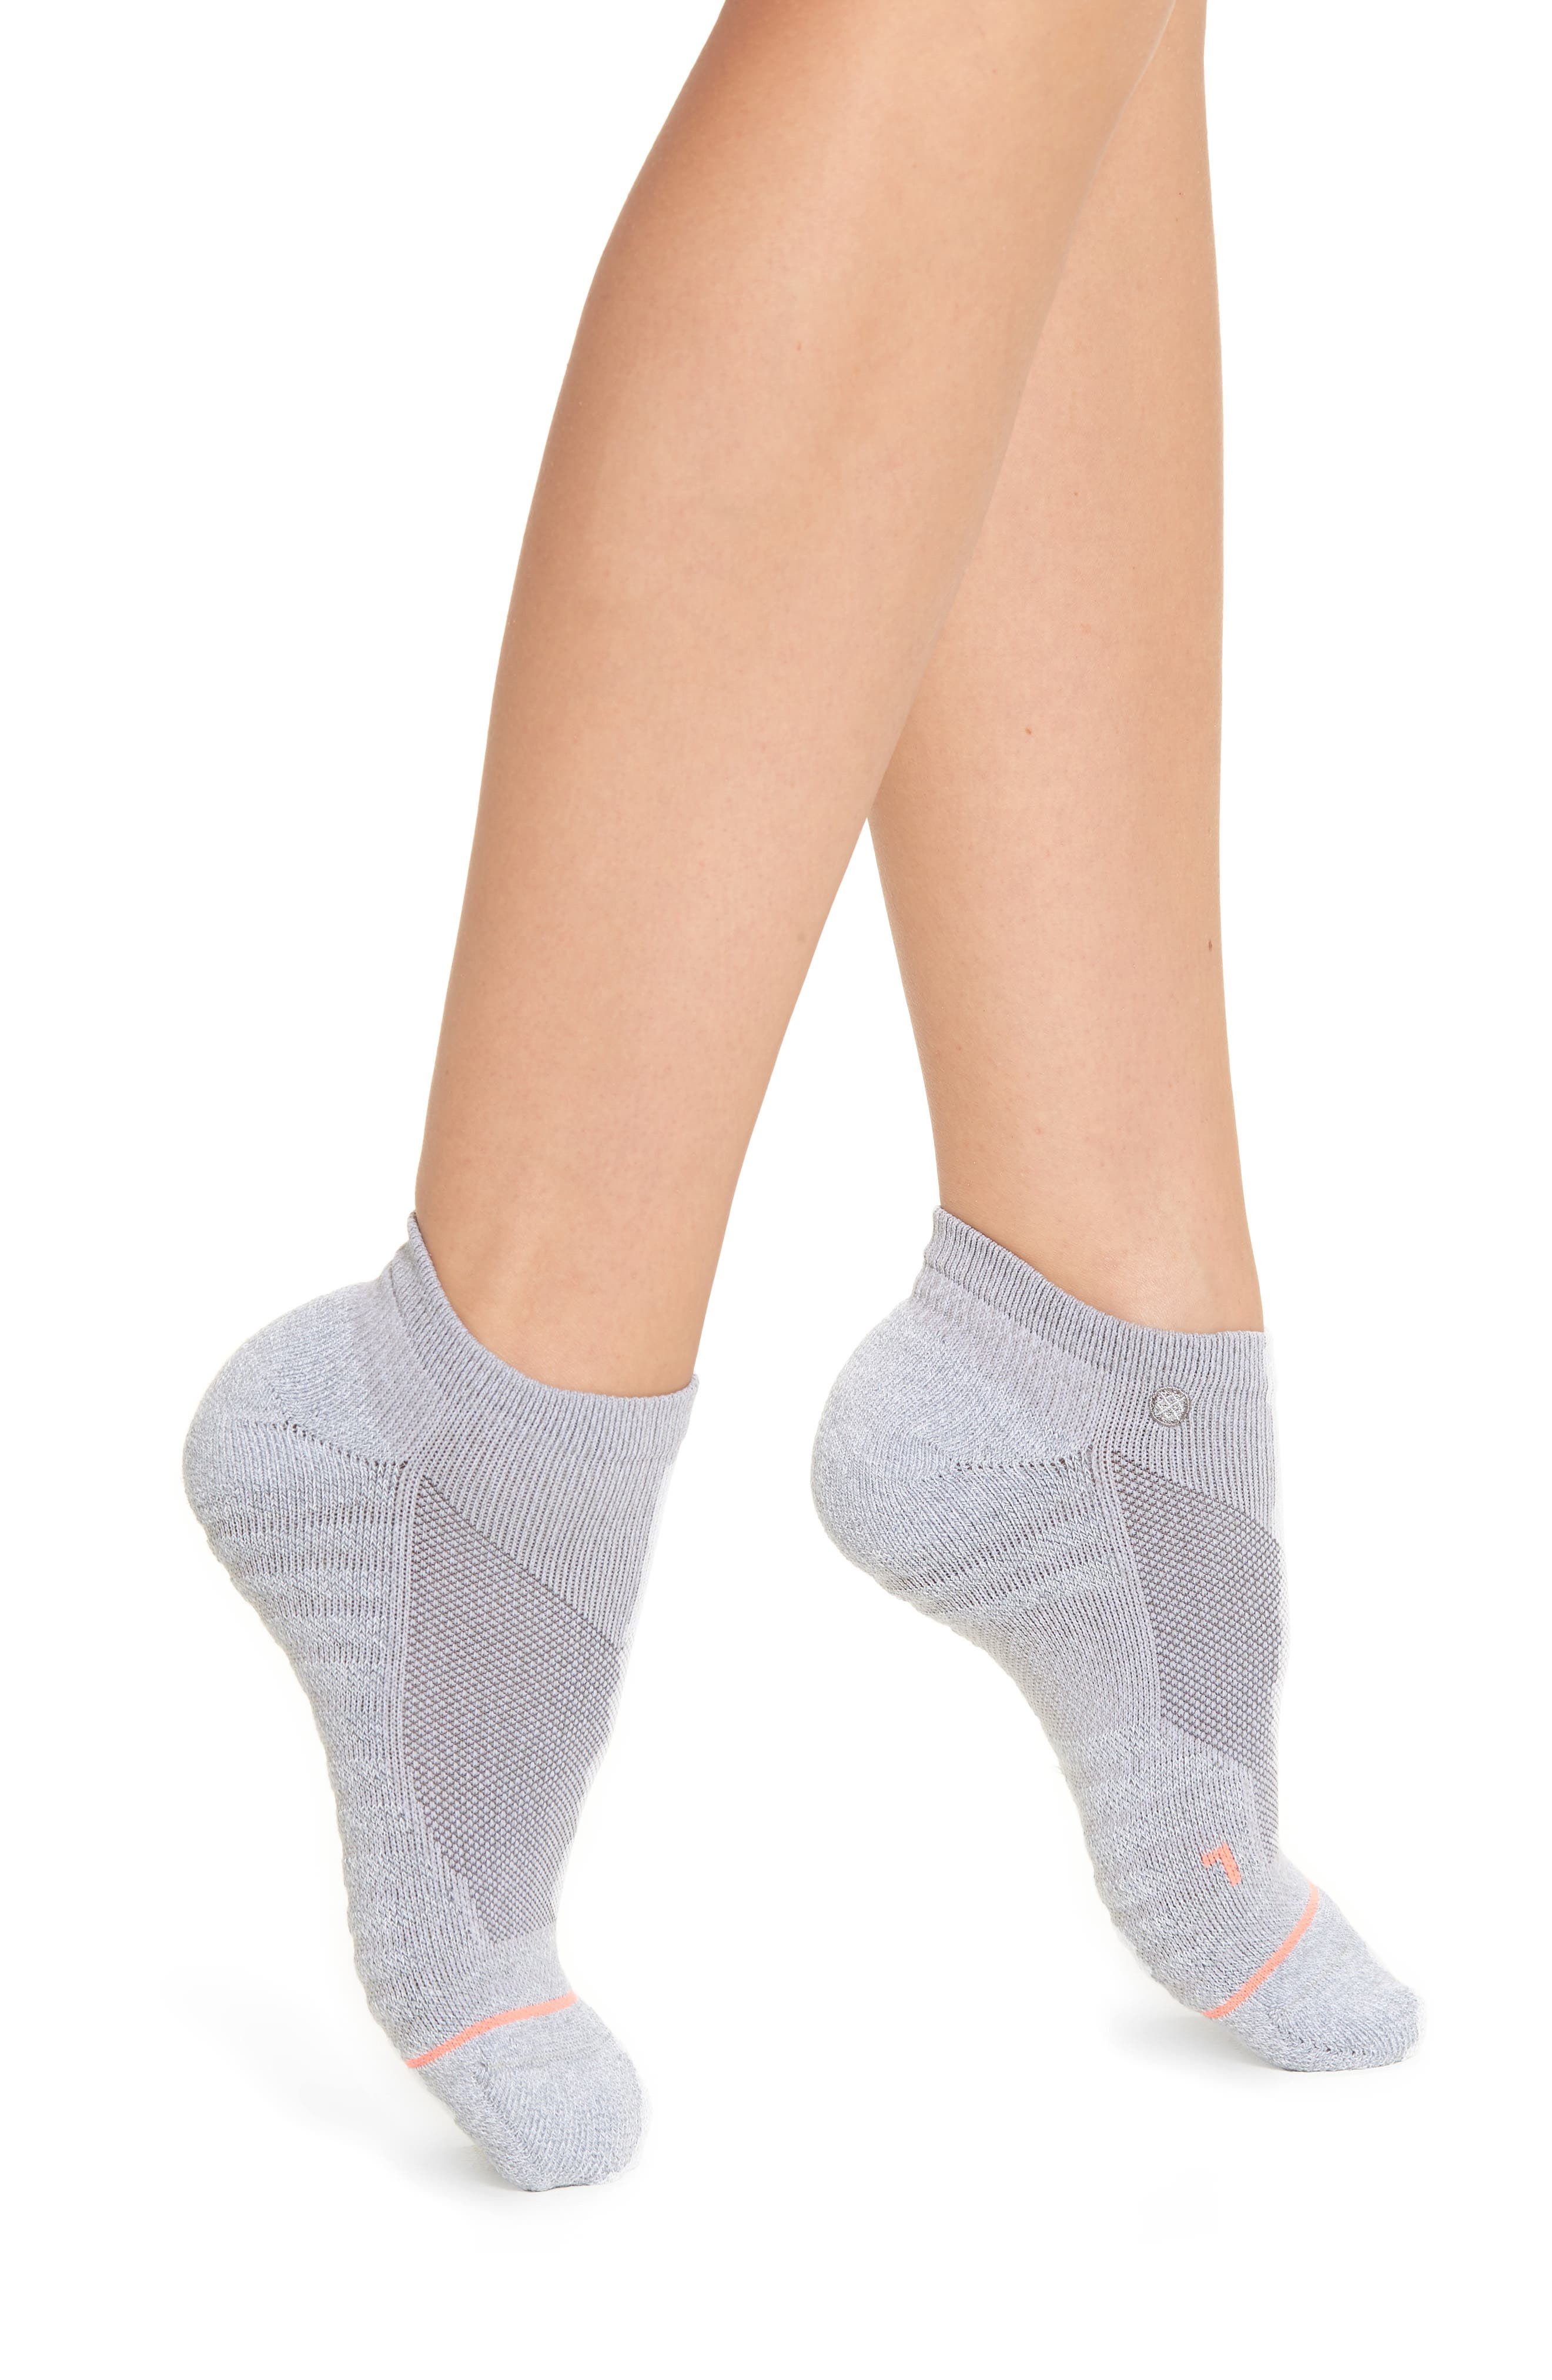 Main Image - Stance Icon Athletic Low Cut Socks